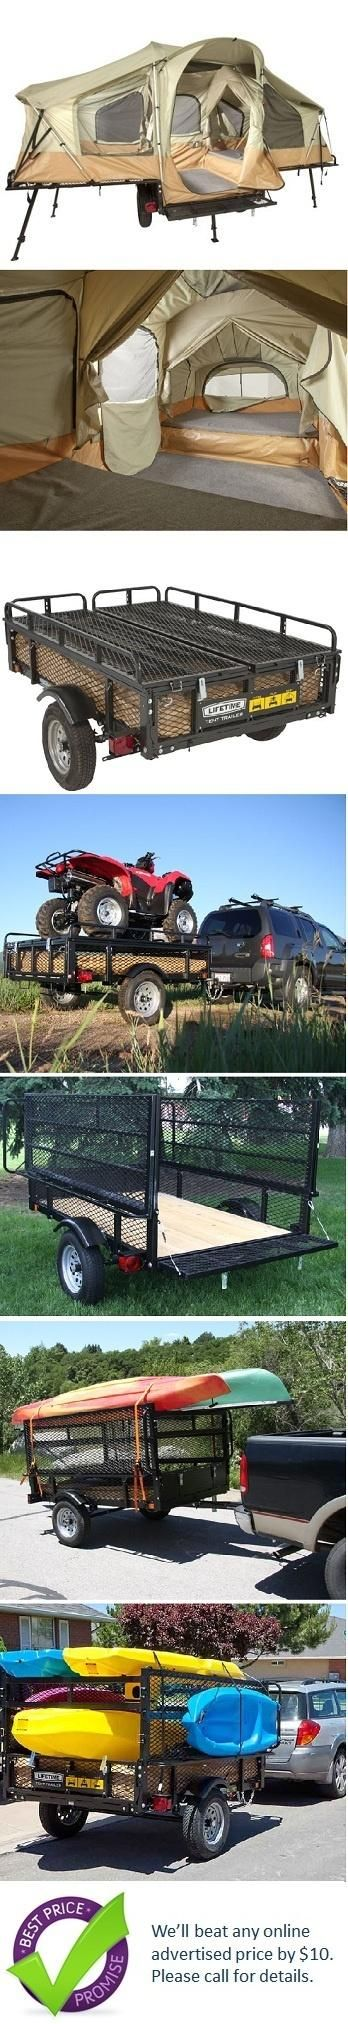 Lifetime Tent Trailer. I want one of these! Too bad they're $3000.